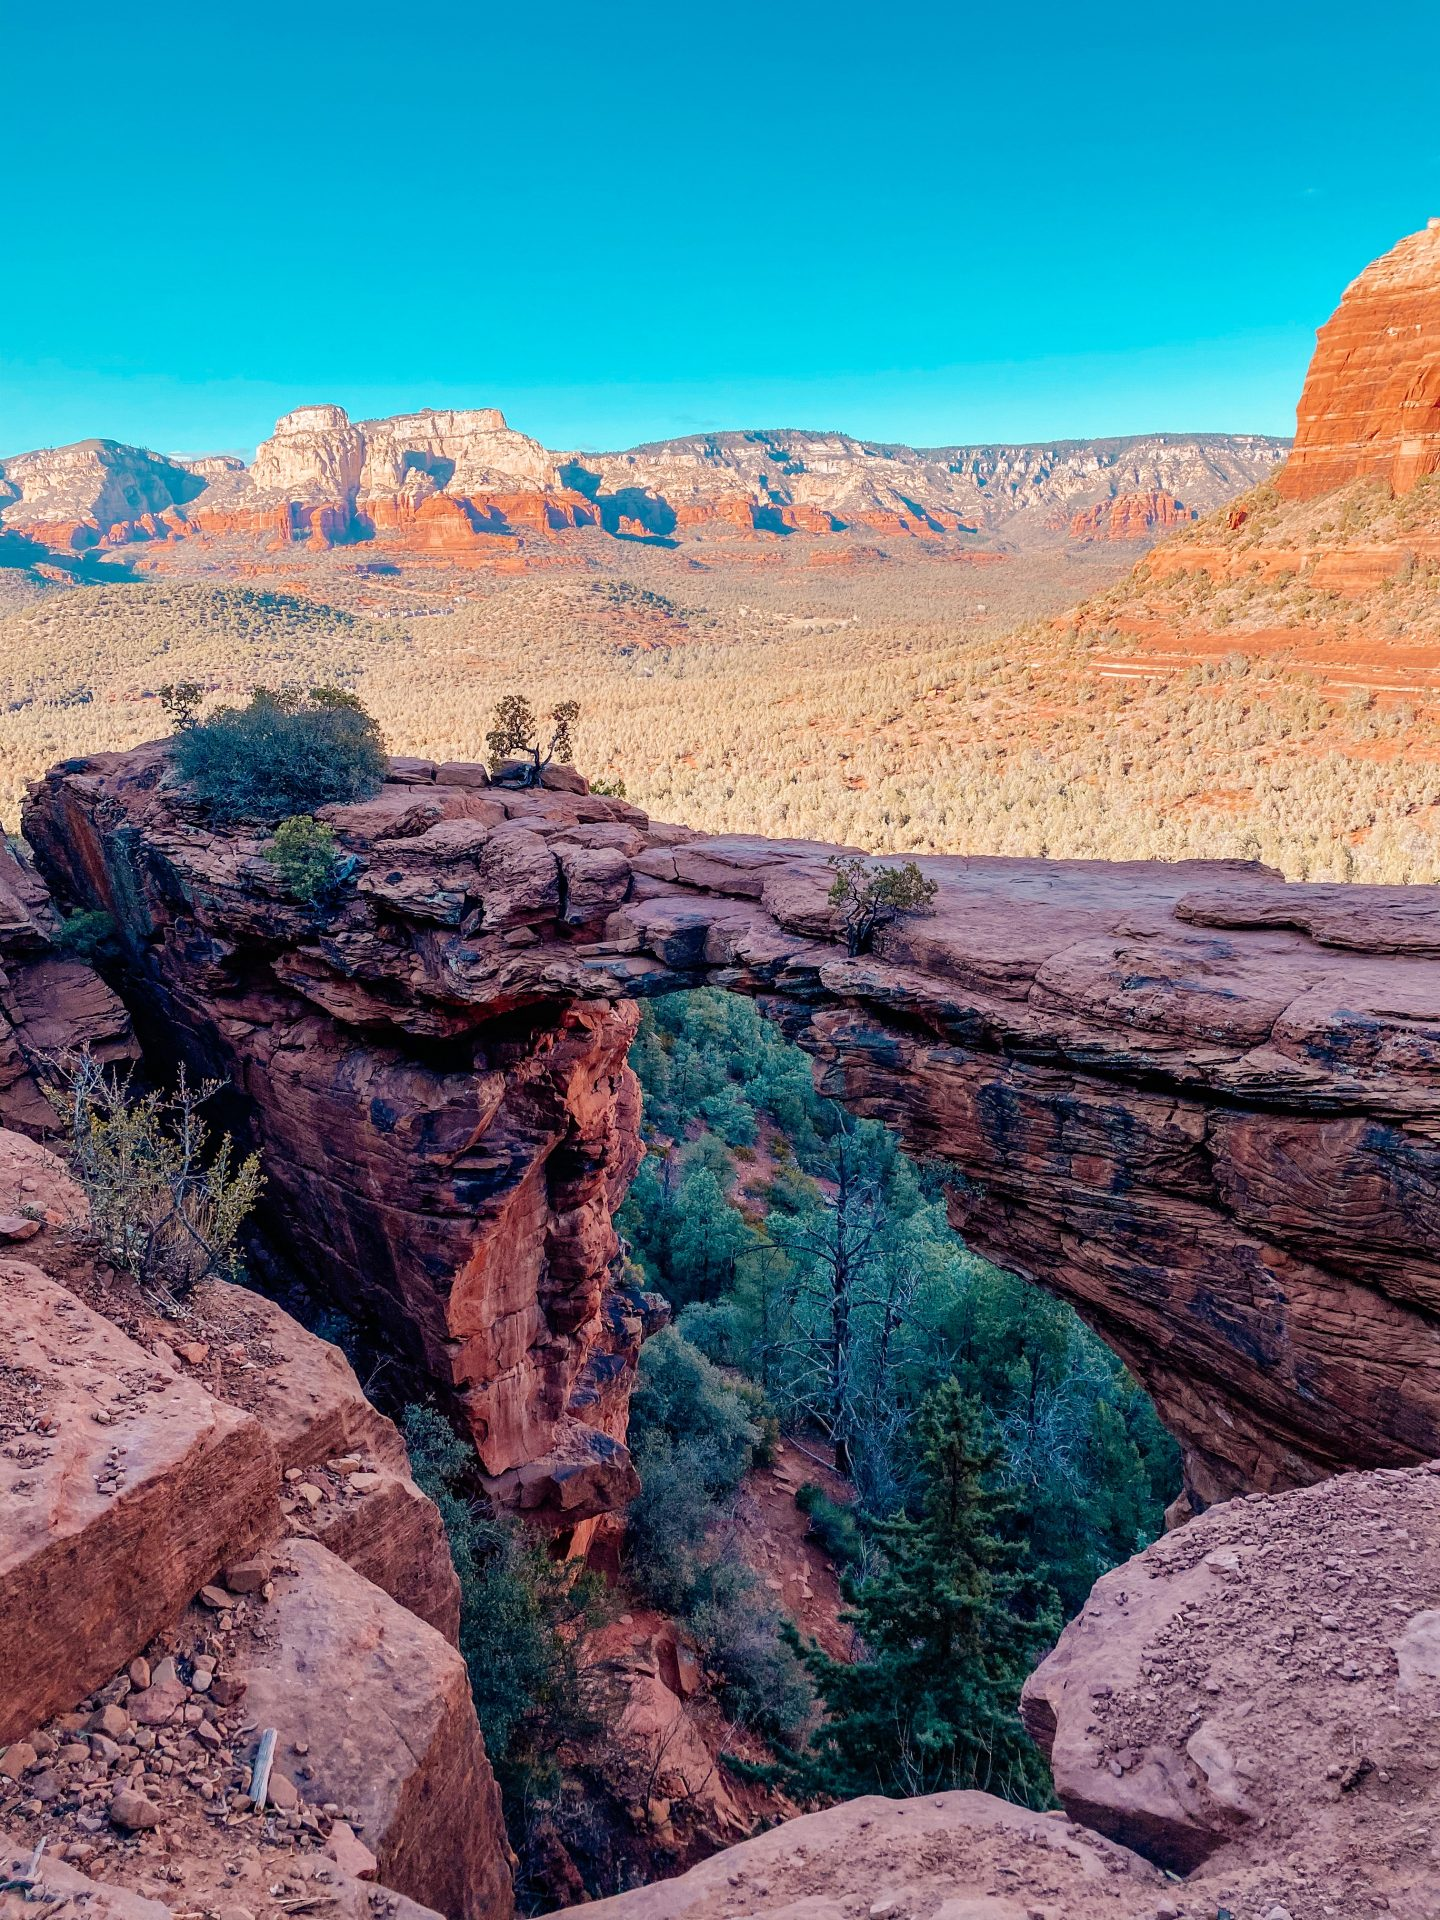 View out over Sedona, Arizona and red rock formations. A narrow bridge is shown close up and a blue cloudless sky.